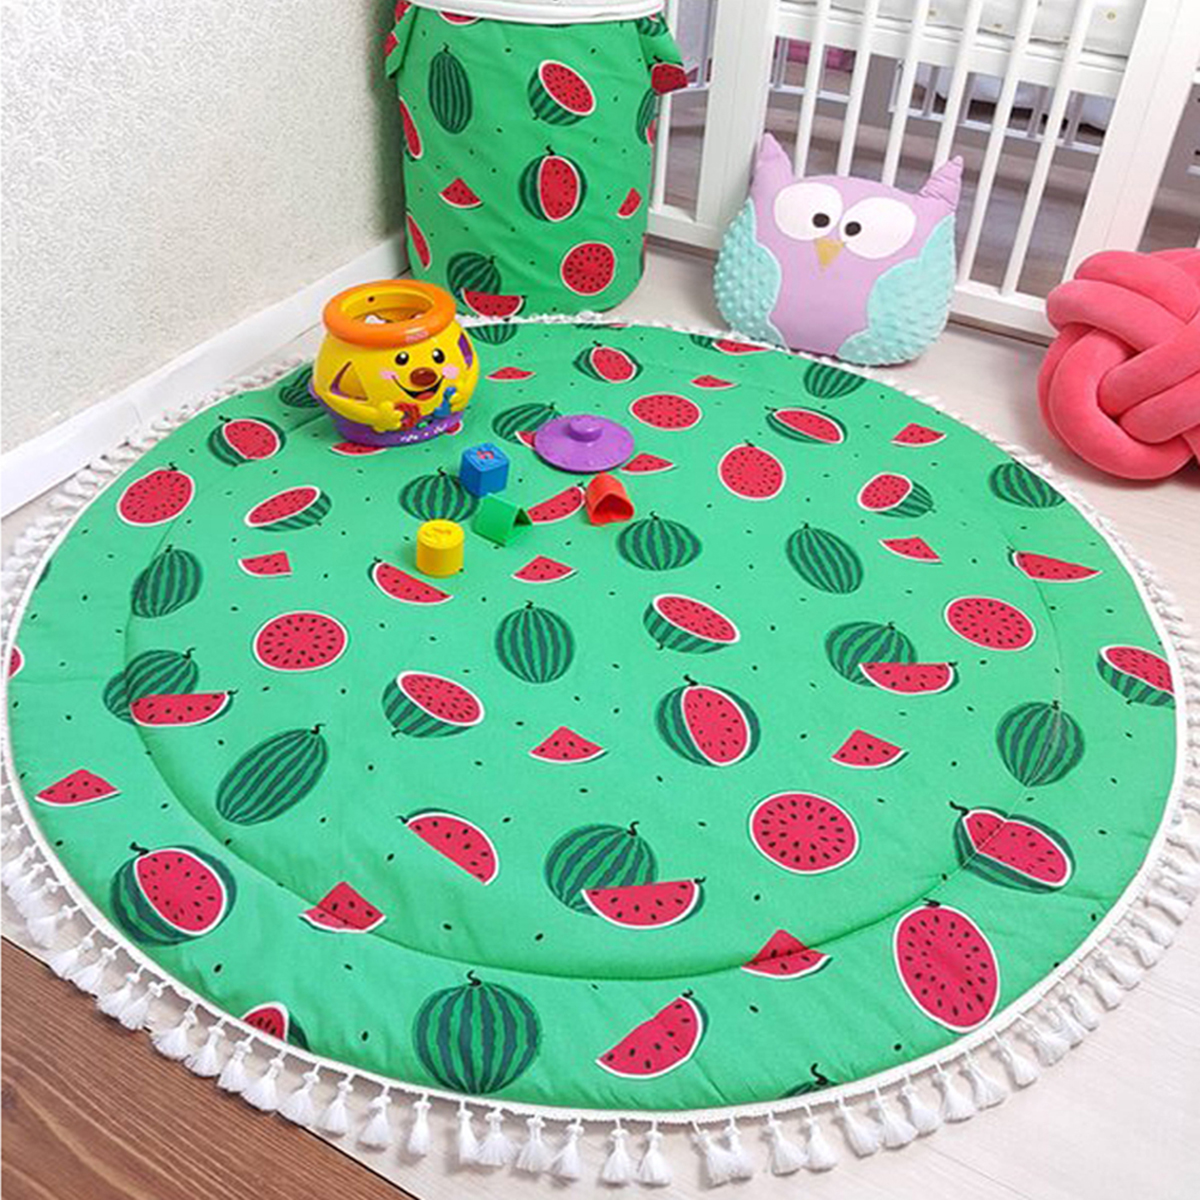 90CM Baby Double Sided Crawling Mat Environmental Protection Mat Watermelon Blanket Shatter-resistant Pad Infant Game Play Rug